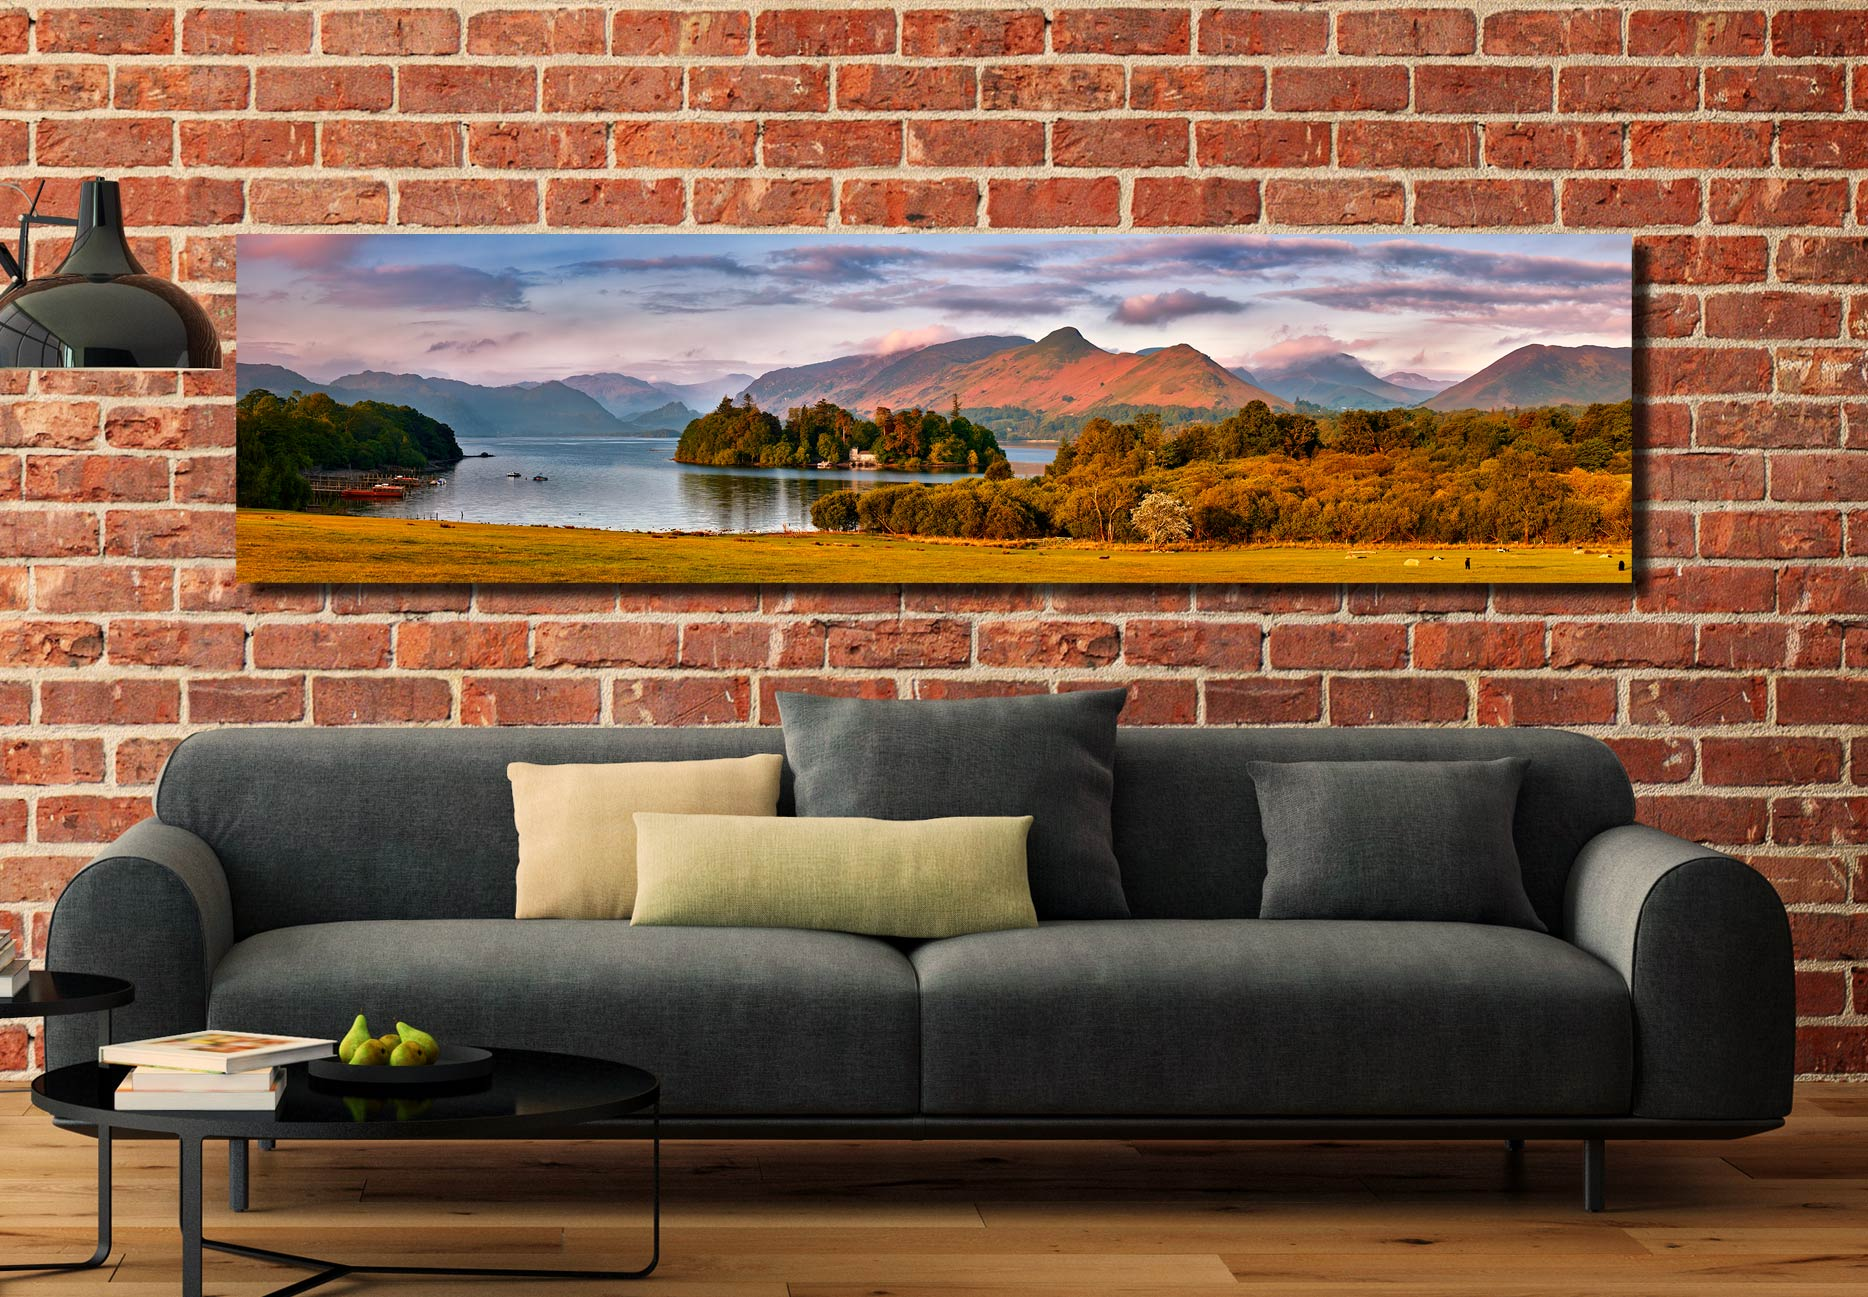 Derwent Water and Catbells in Morning Light - Print Aluminium Backing With Acrylic Glazing on Wall